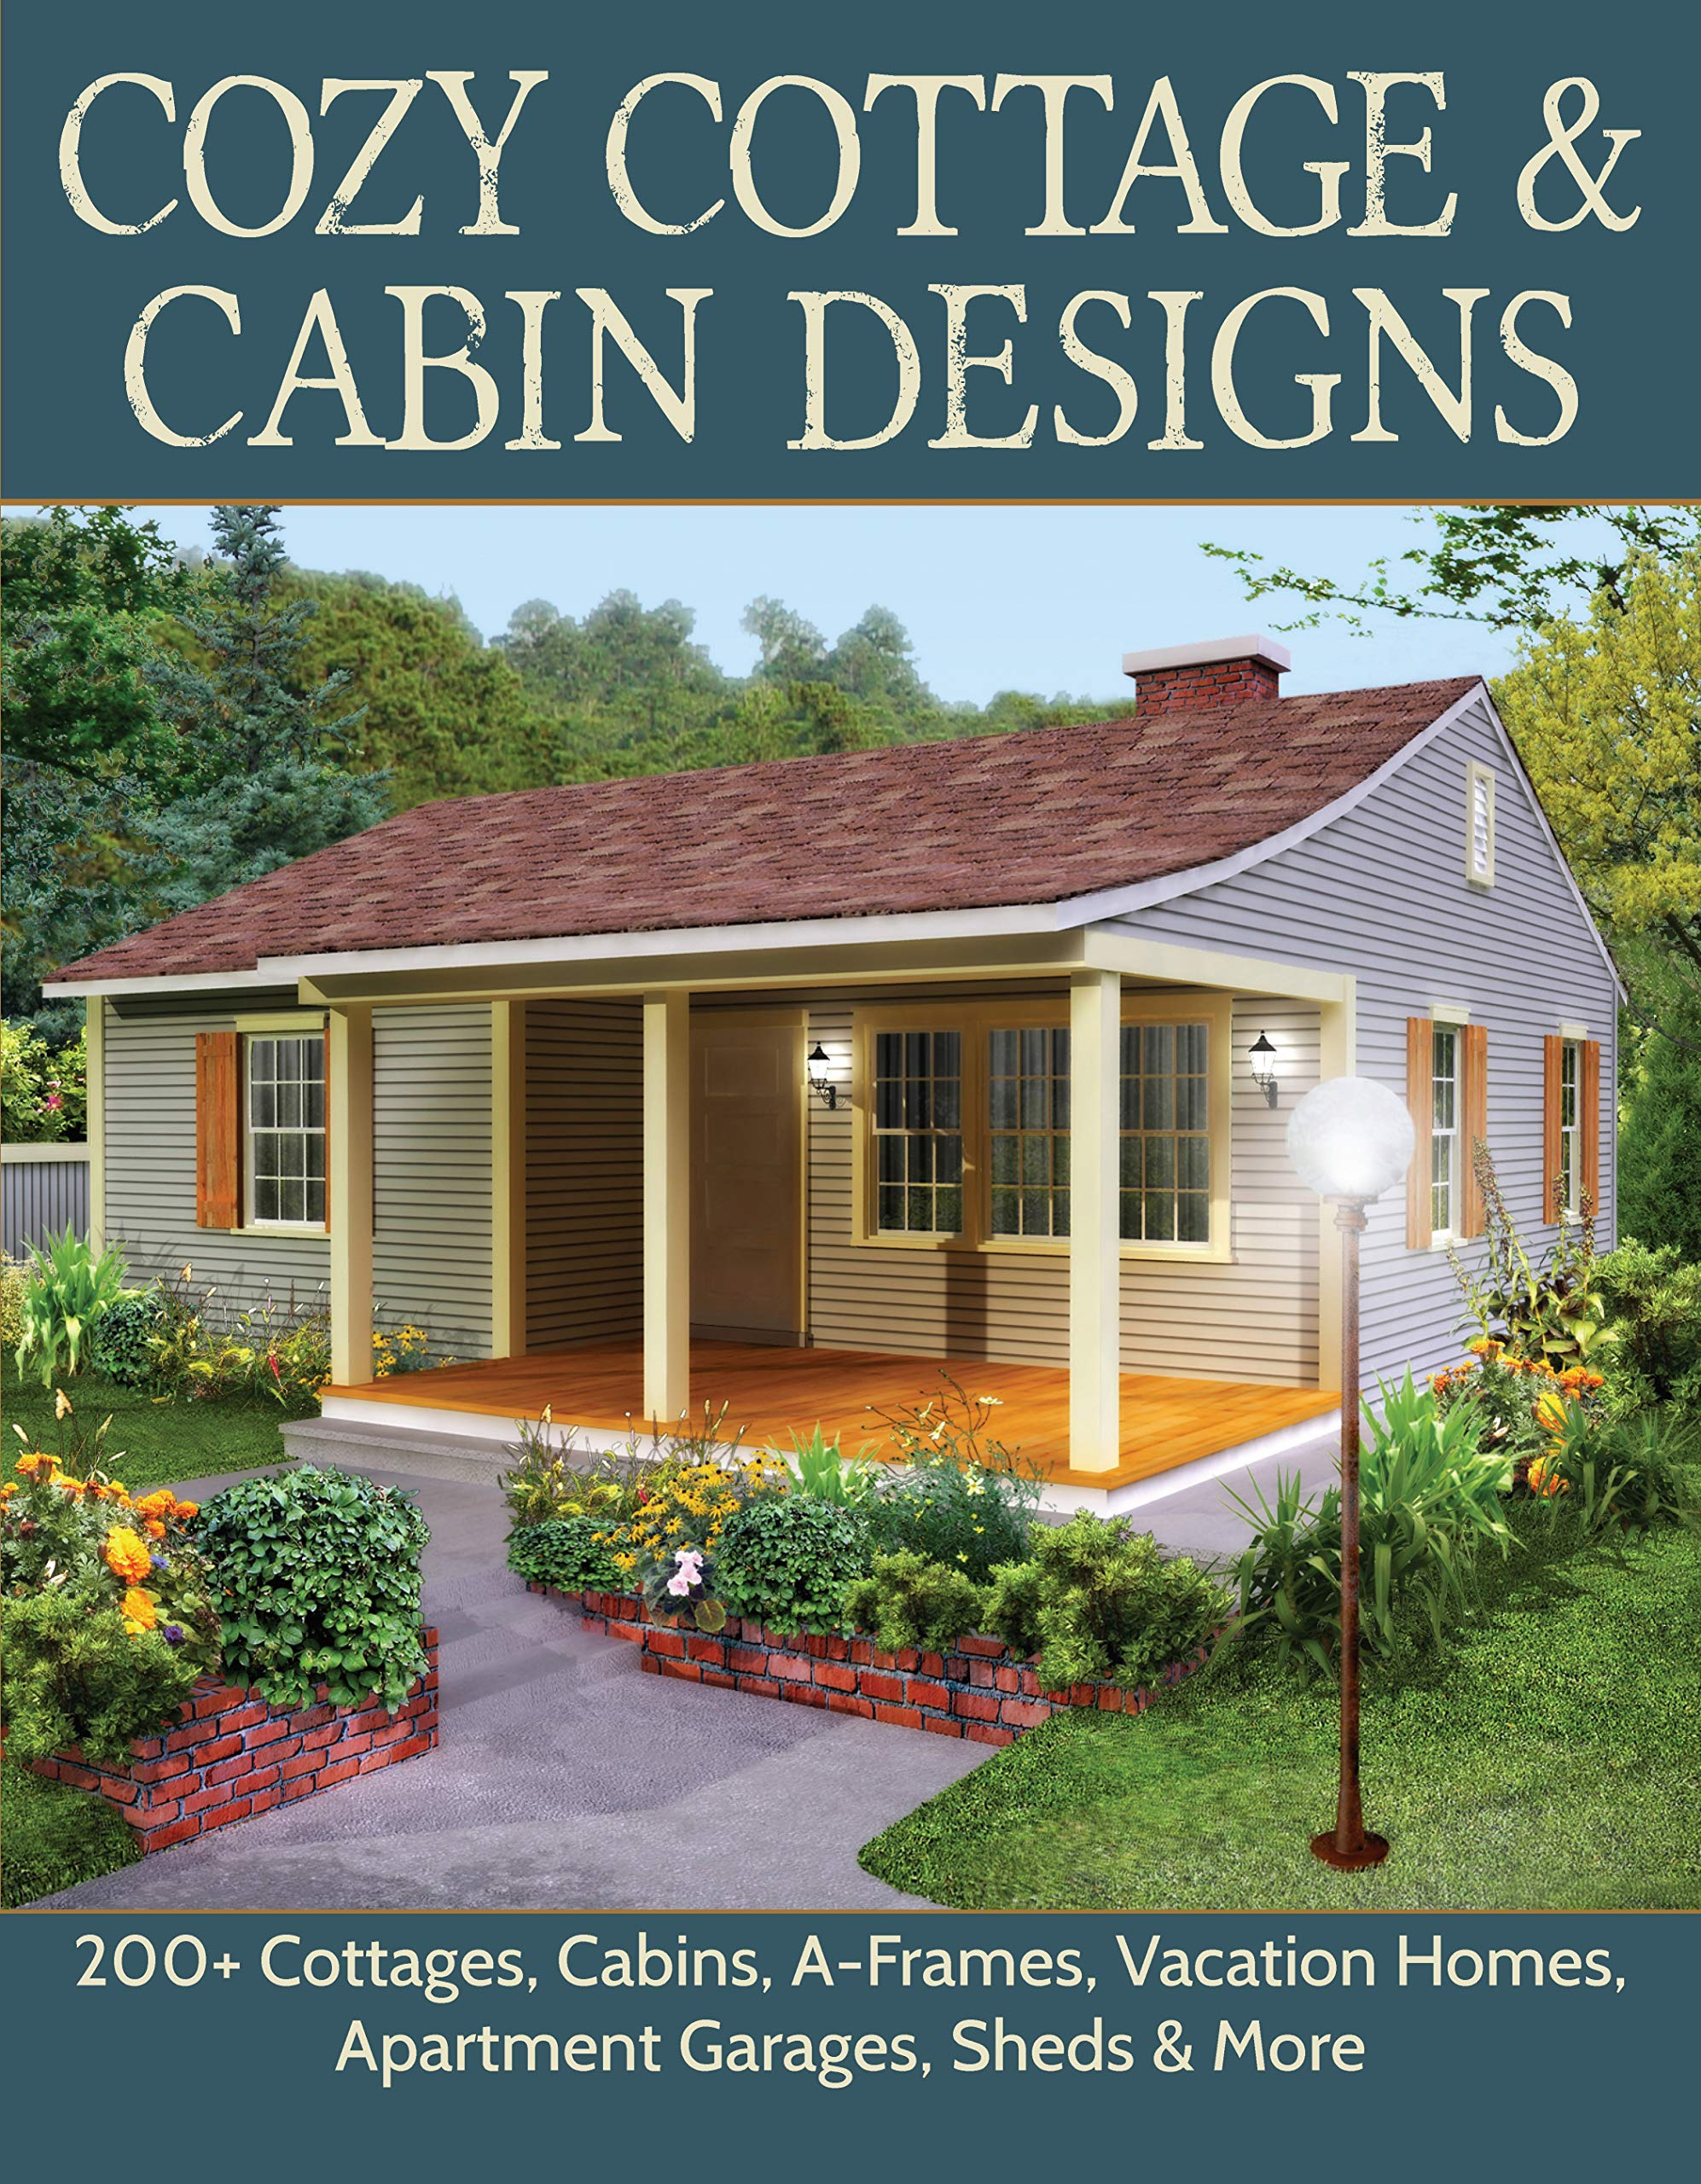 Cottage Designs and Floor Plans Lovely Cozy Cottage & Cabin Designs 200 Cottages Cabins A